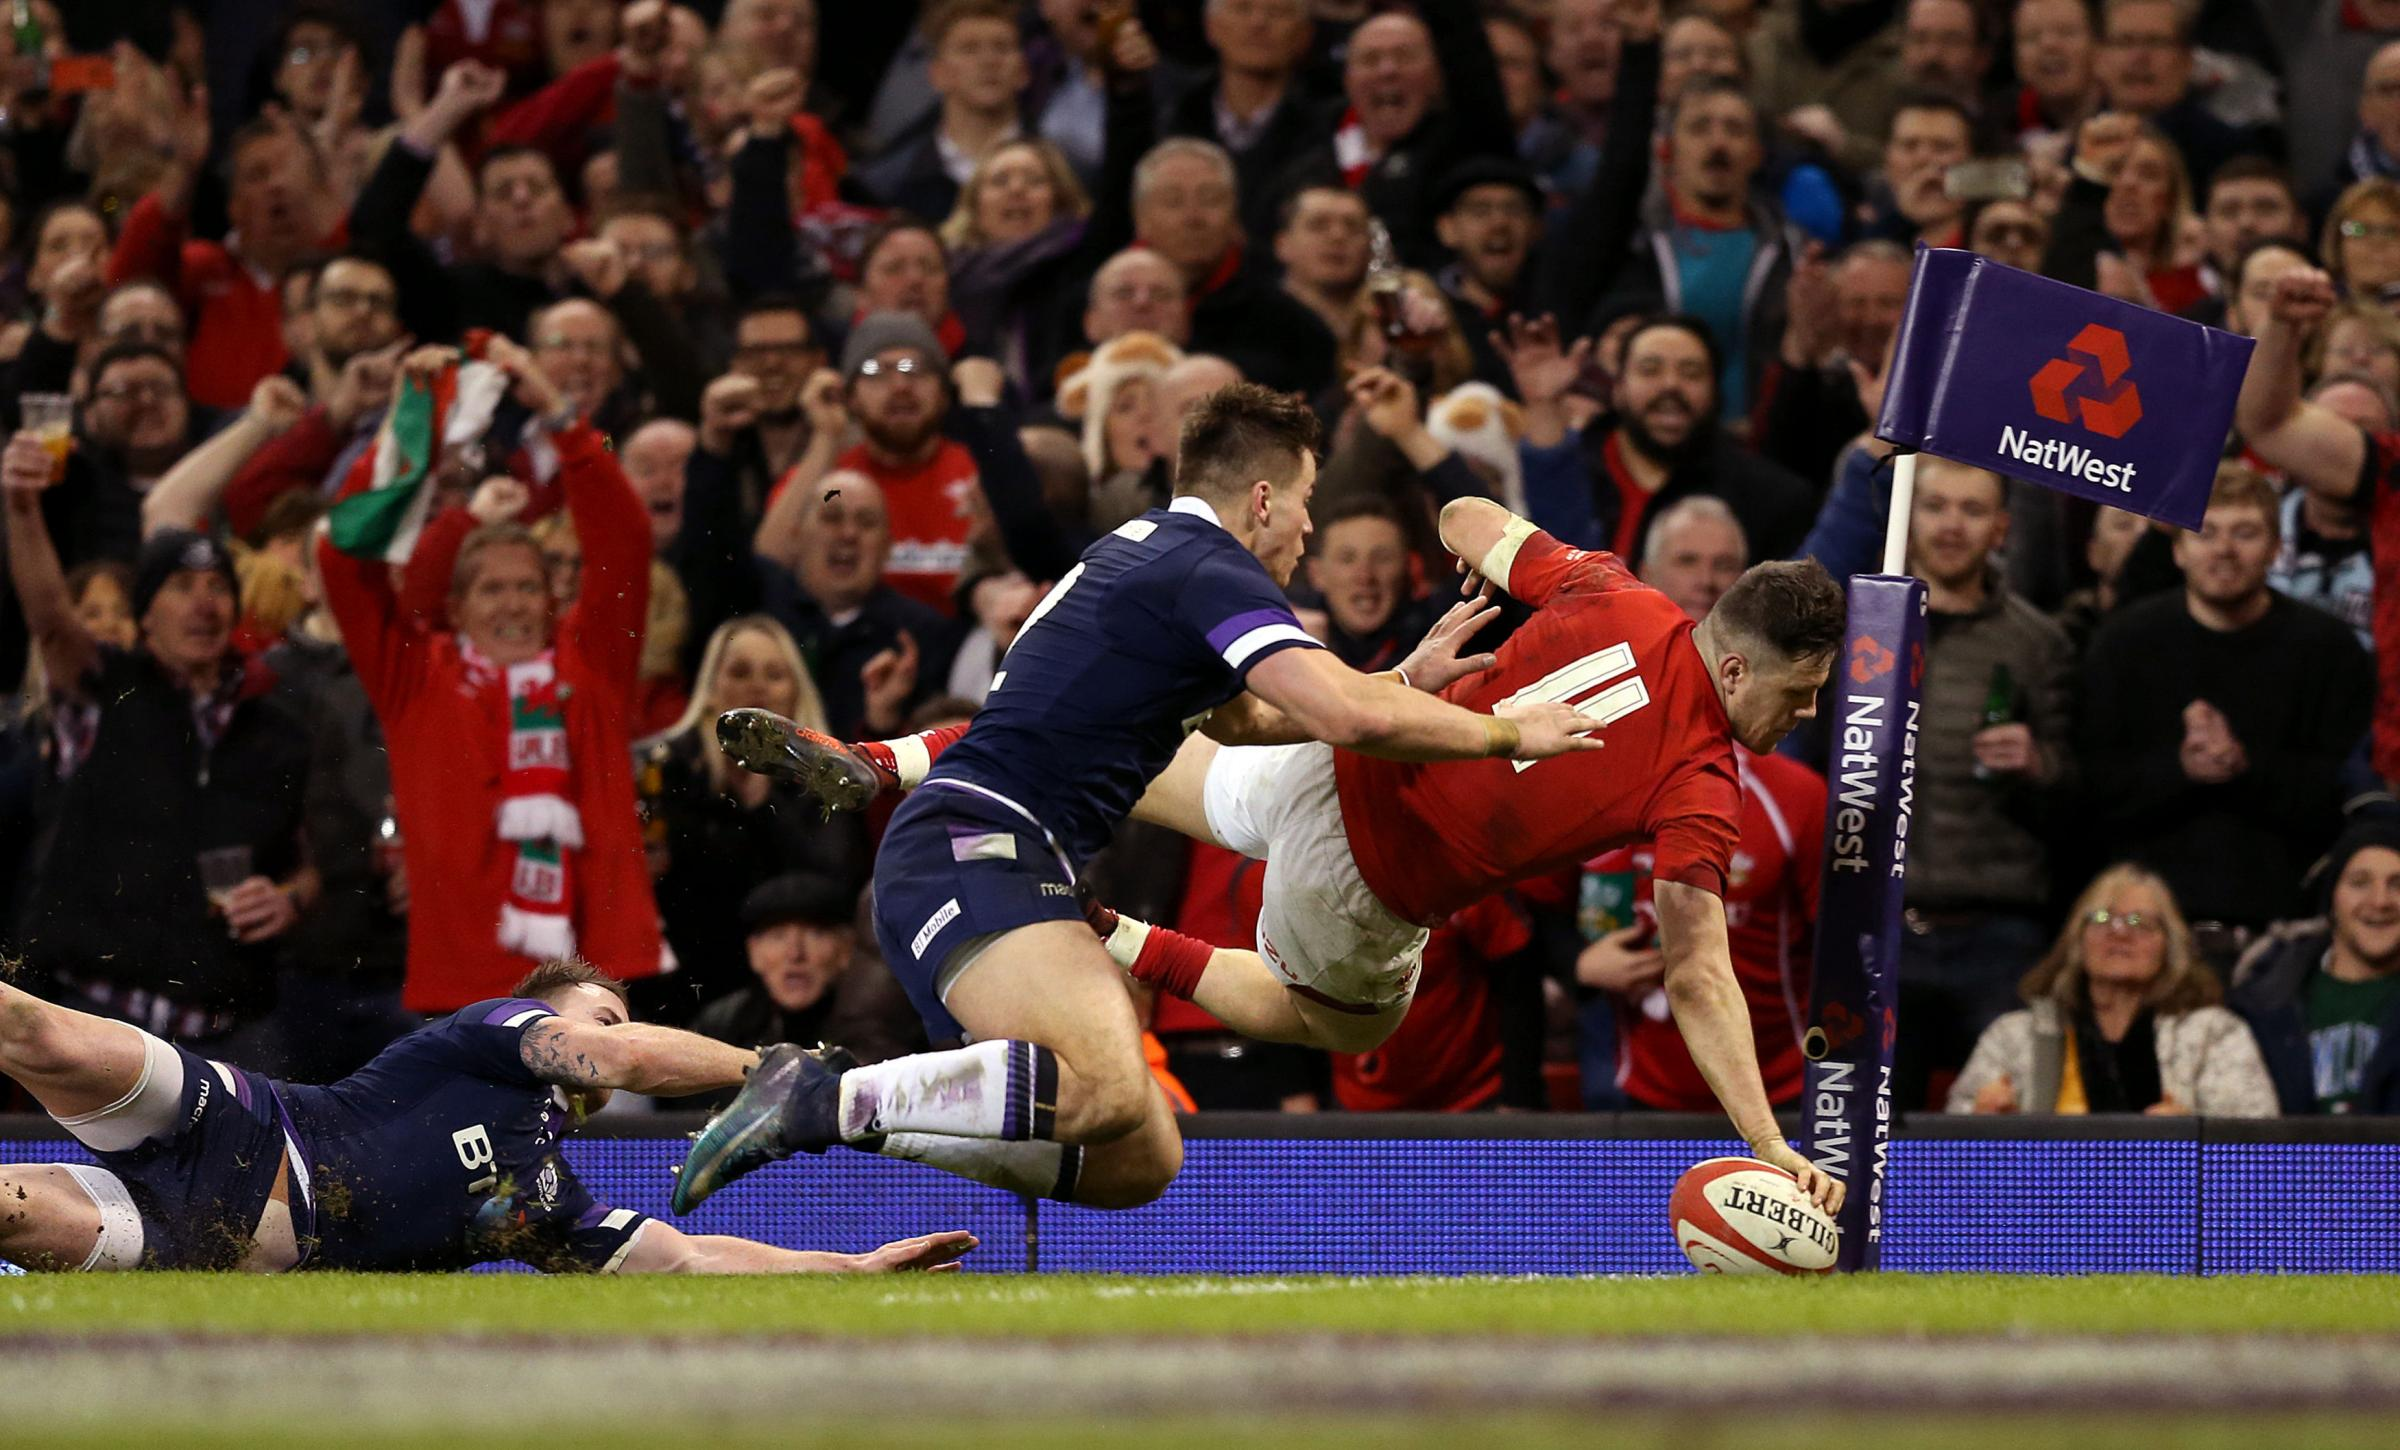 BONUS: Wing Steff Evans goes over for Wales' fourth try